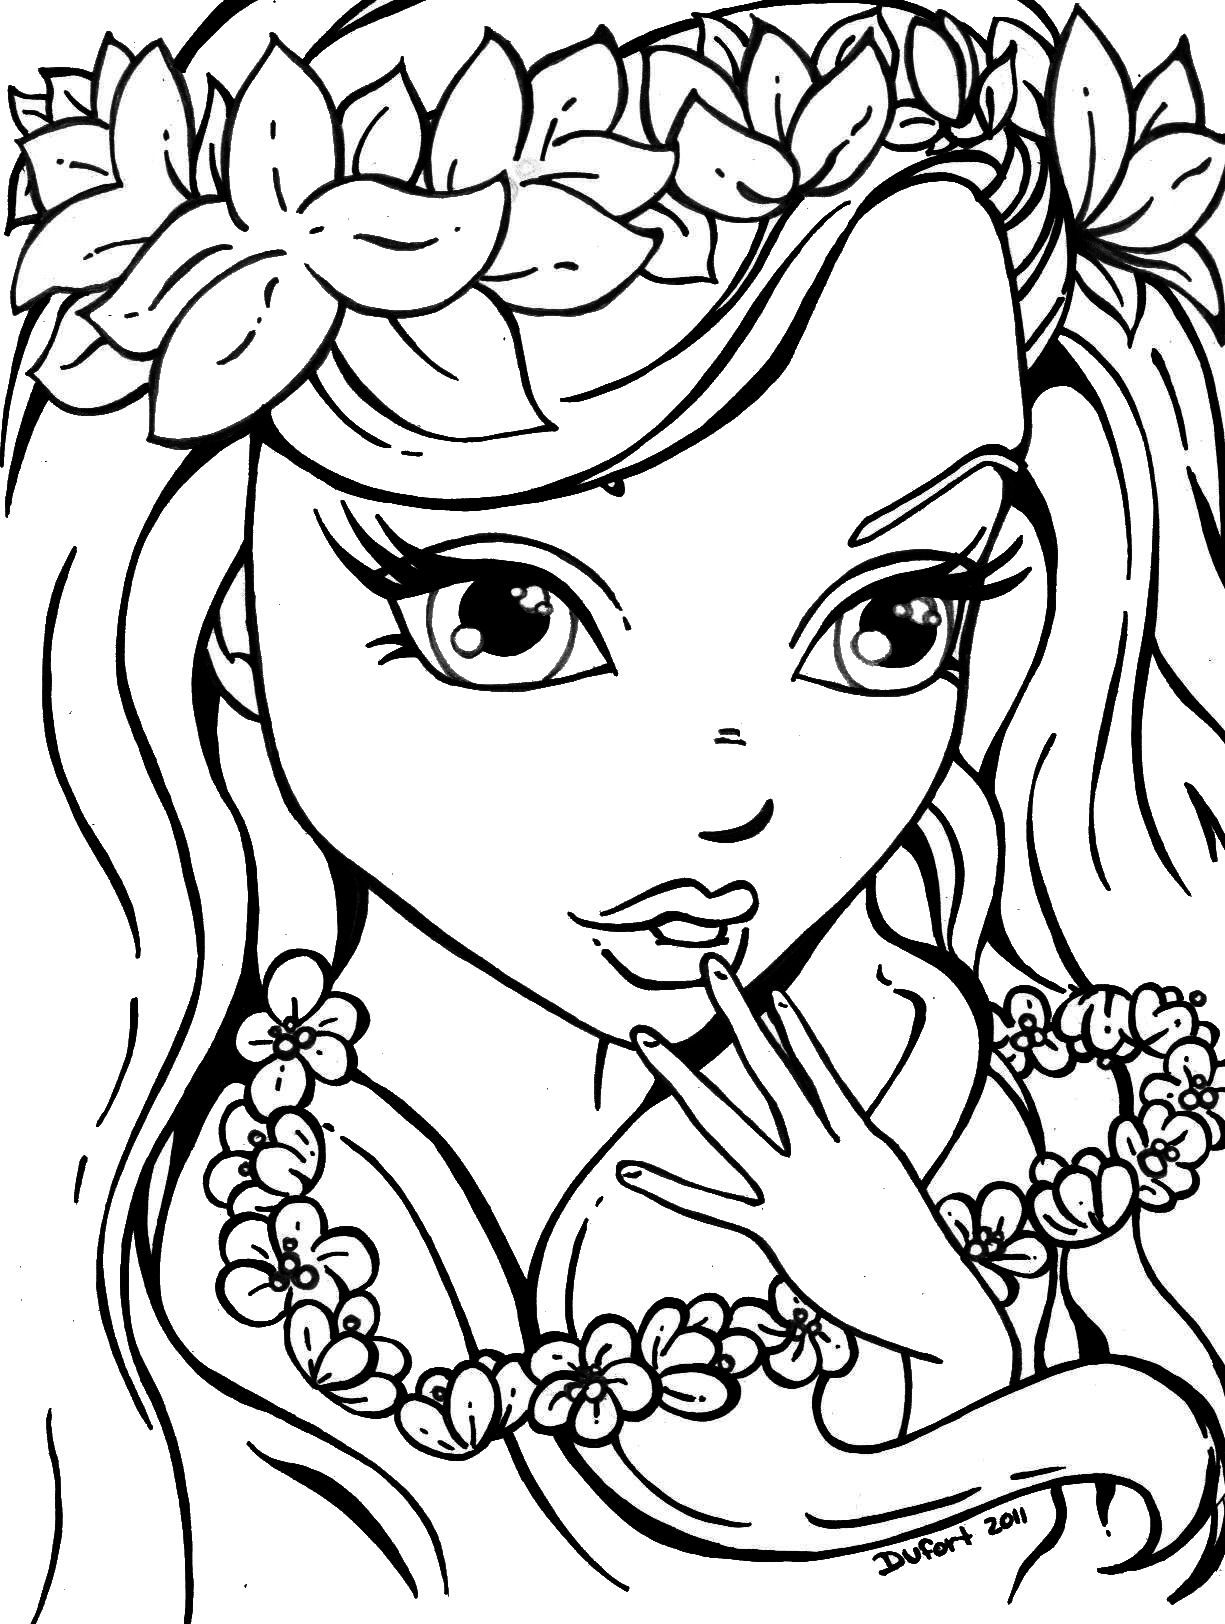 for coloring tangled coloring pages printable activity shelter for coloring